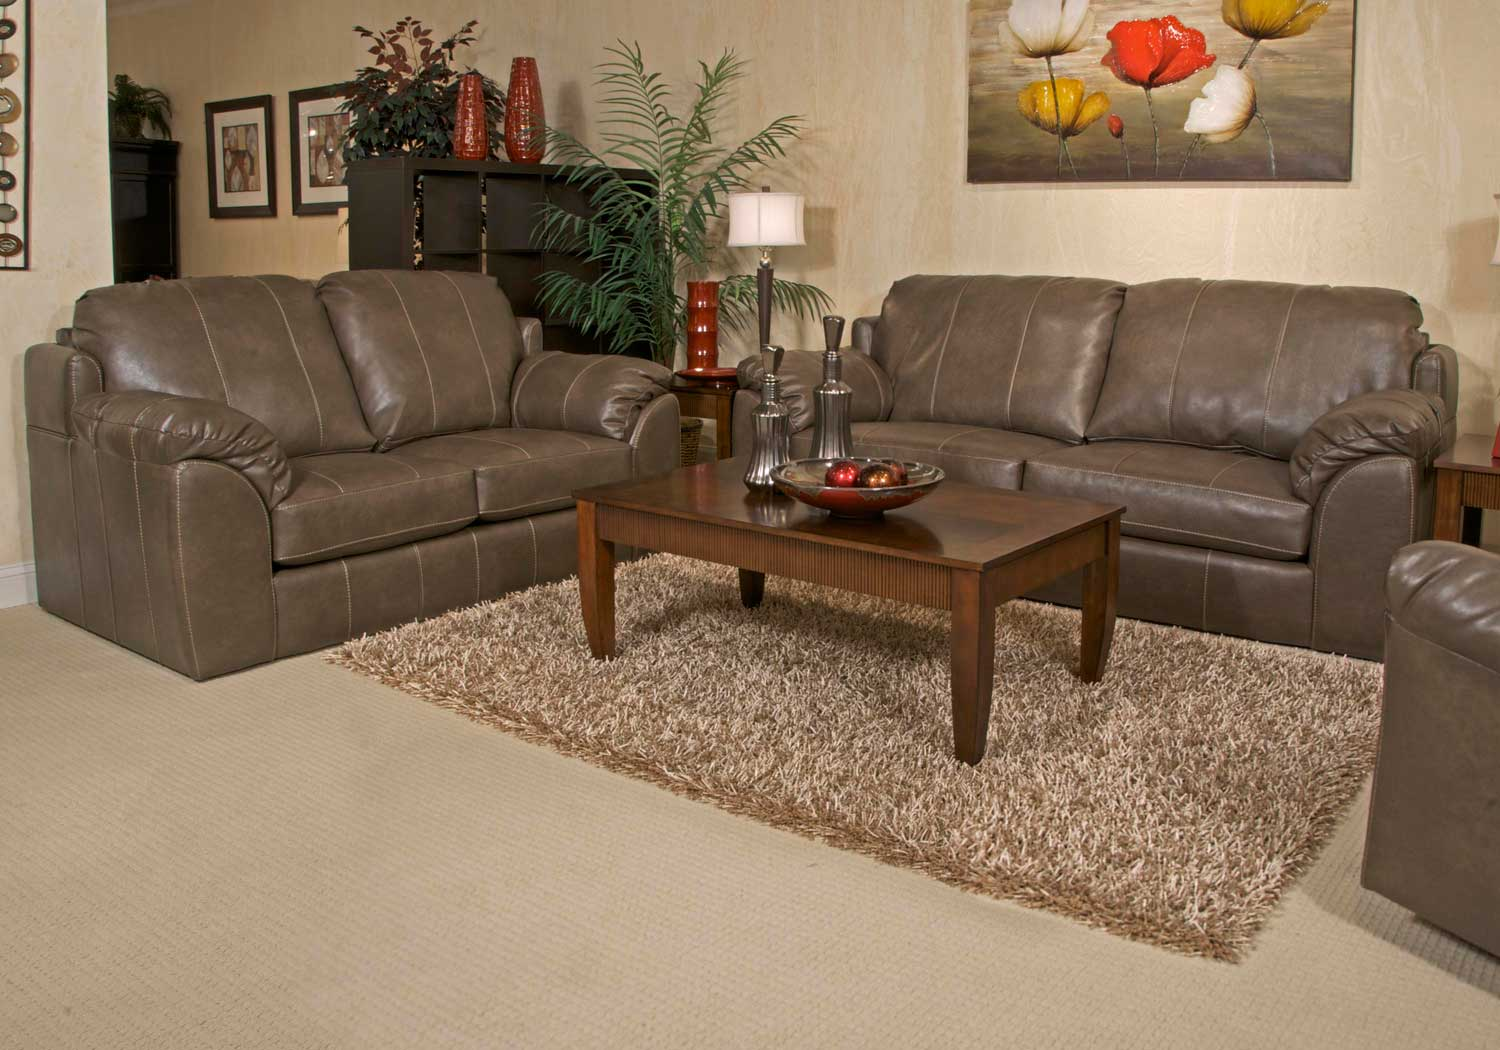 Jackson Sullivan Sofa Set Smoke Jf 3188 Sofa Set Smoke